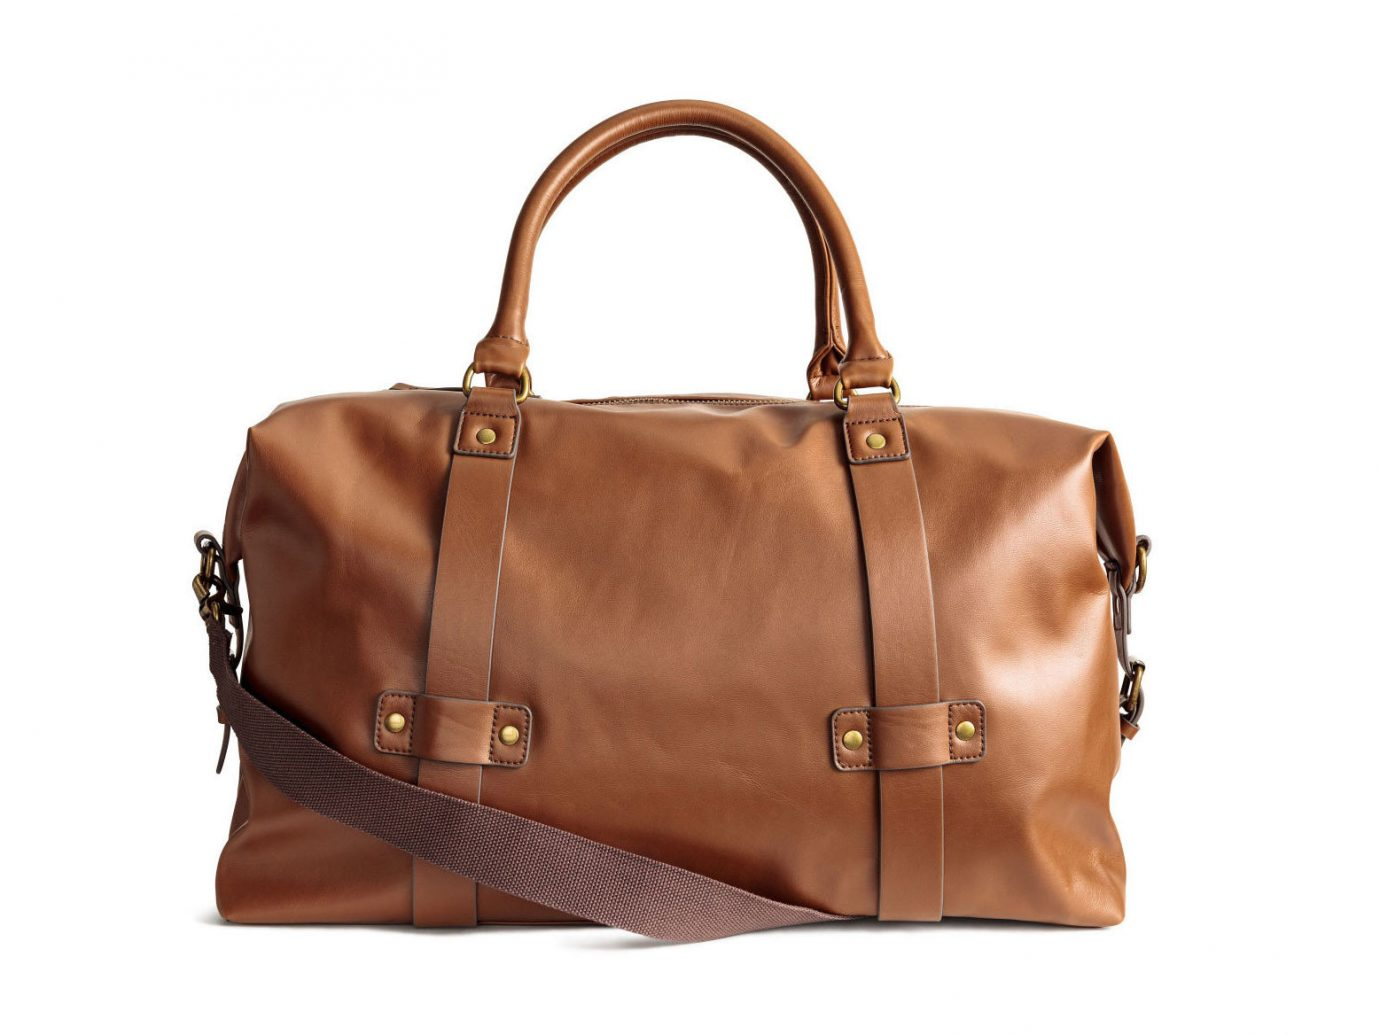 Style + Design Travel Shop Travel Tech Travel Tips accessory bag handbag brown leather fashion accessory shoulder bag caramel color metal strap product case material beige tote bag brand hand luggage peach tan